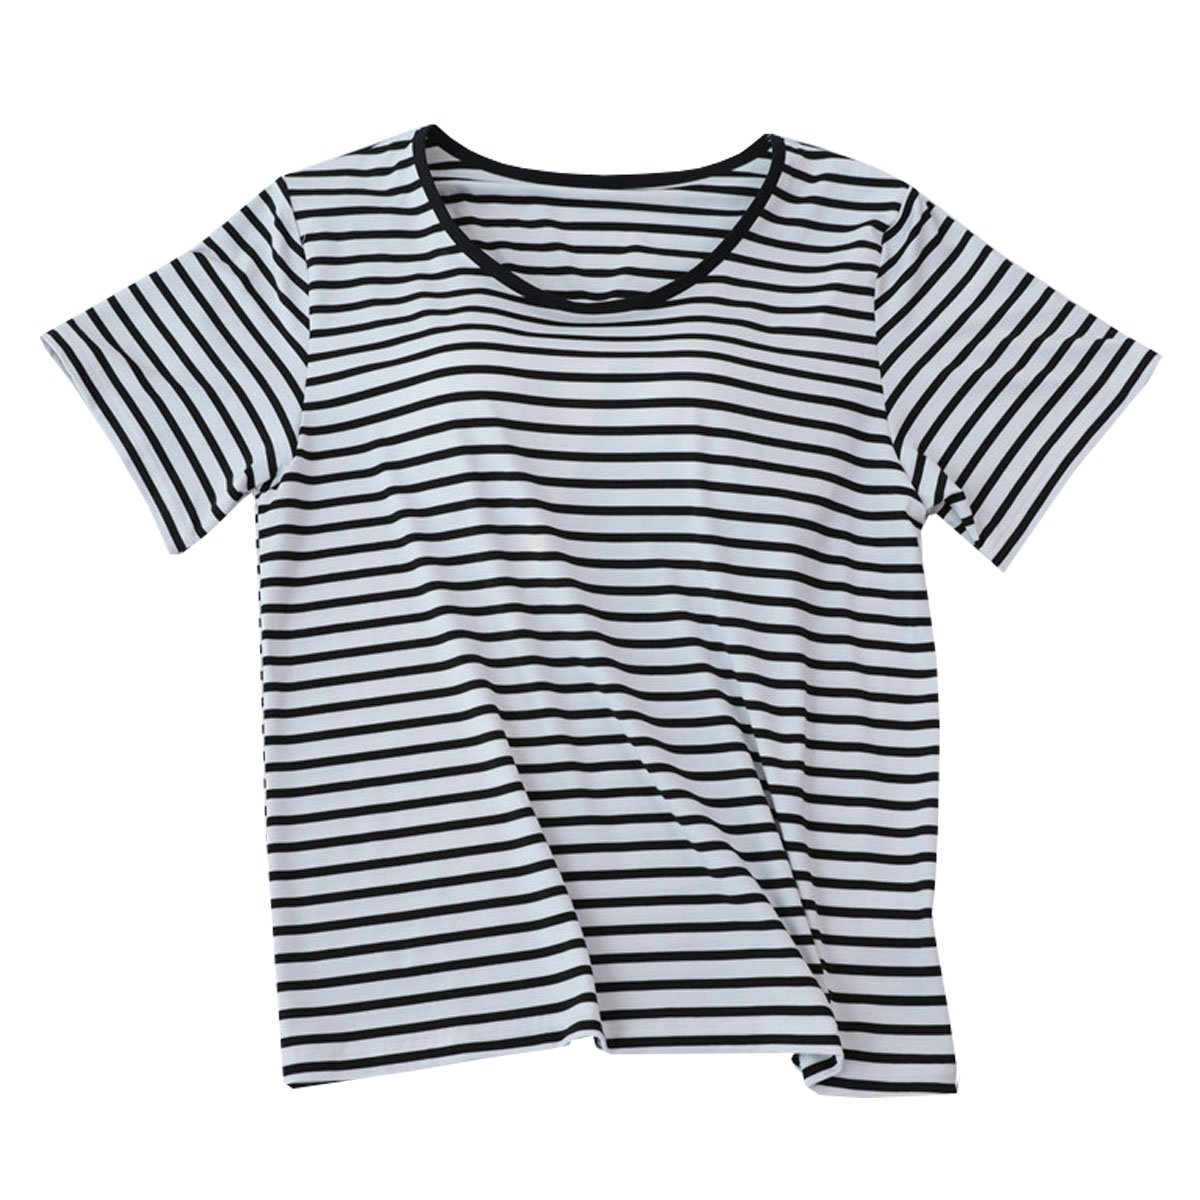 b36ed1f808 ChuJiao Women s Built-in Bra Loose Version of The Striped Short-Sleeved T- Shirt Home Service Tops at Amazon Women s Clothing store